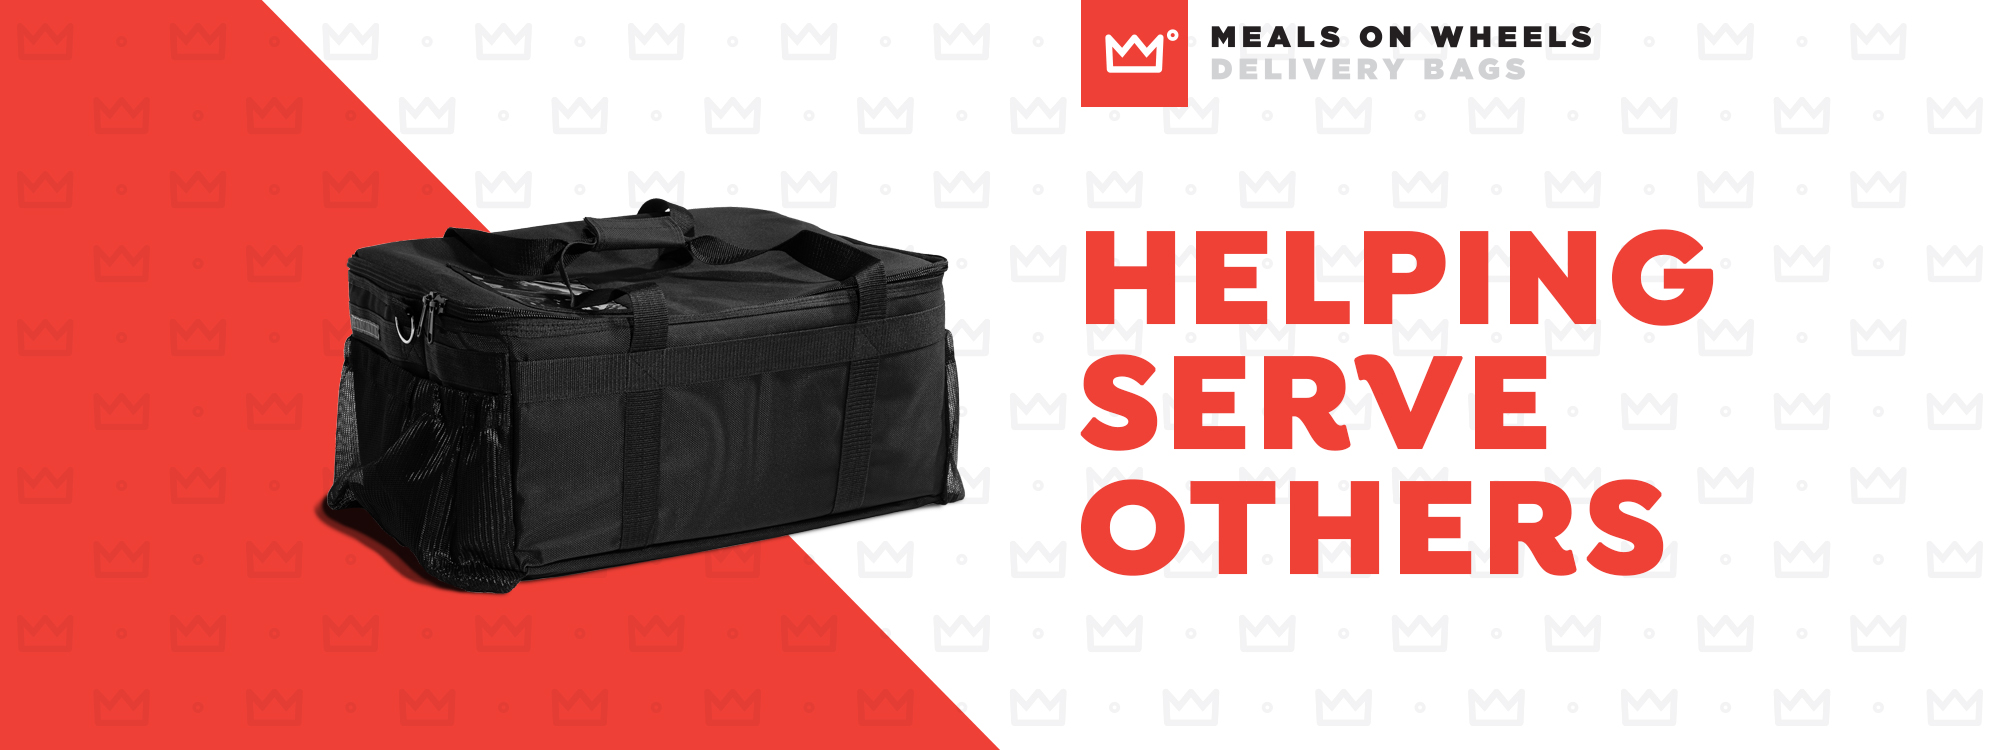 Meals on Wheels Bags